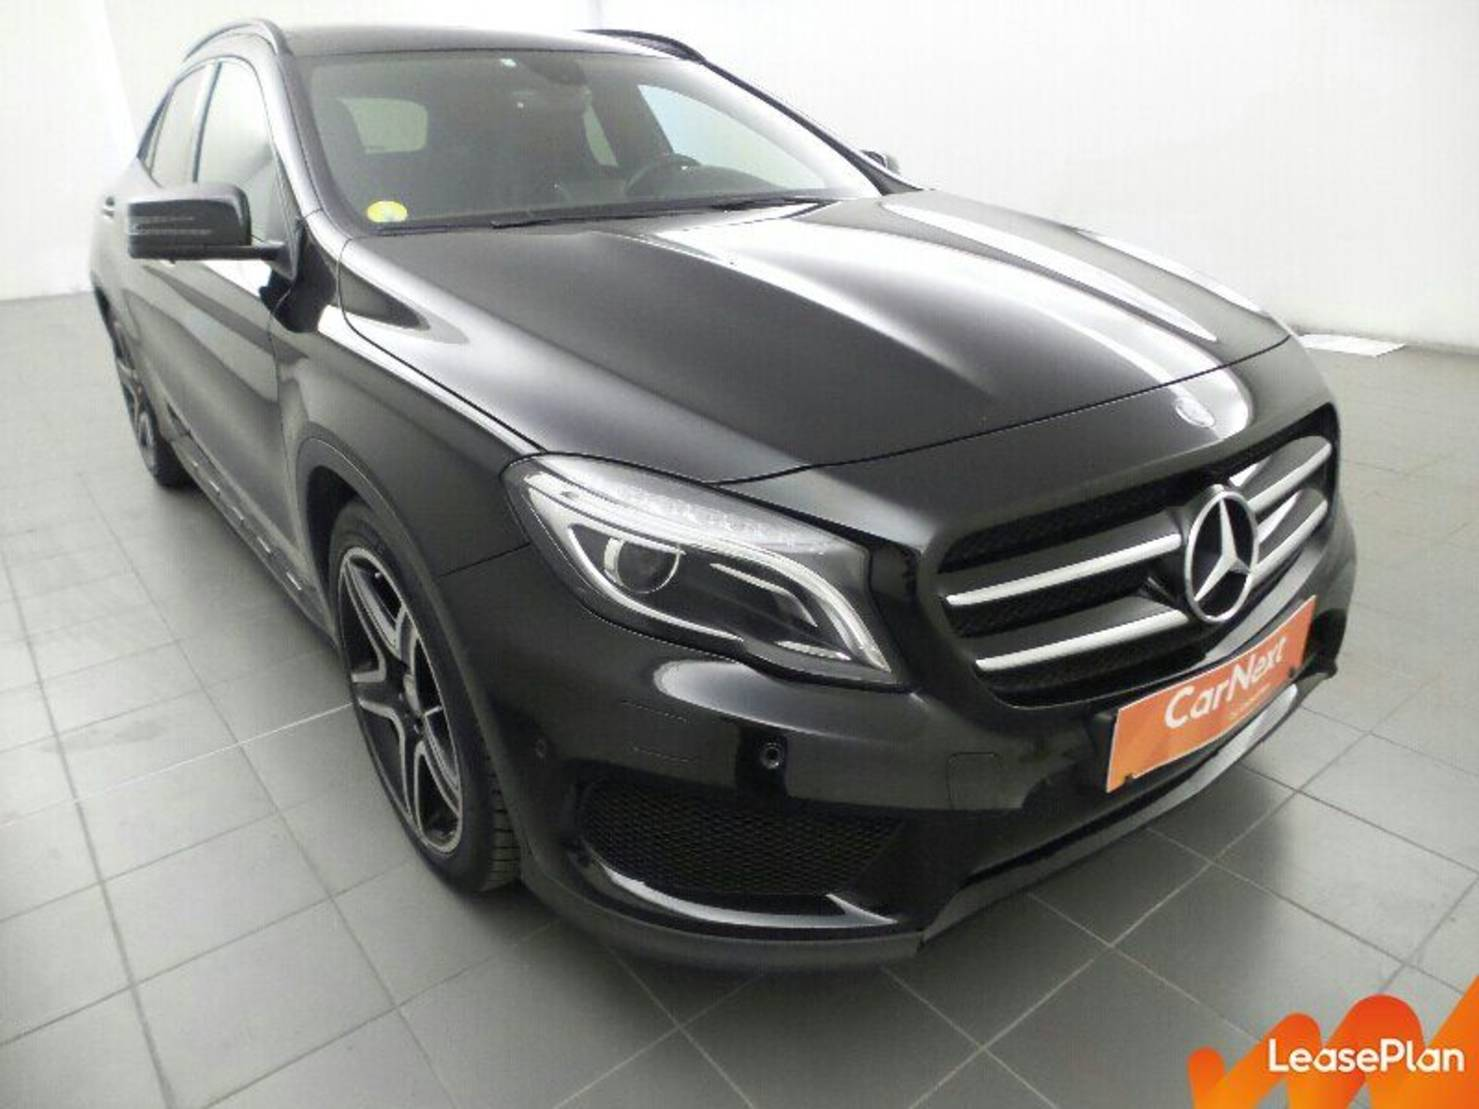 Mercedes-Benz GLA-Klasse 200 CDI 4-Matic, Fascination 7-G DCT A detail2